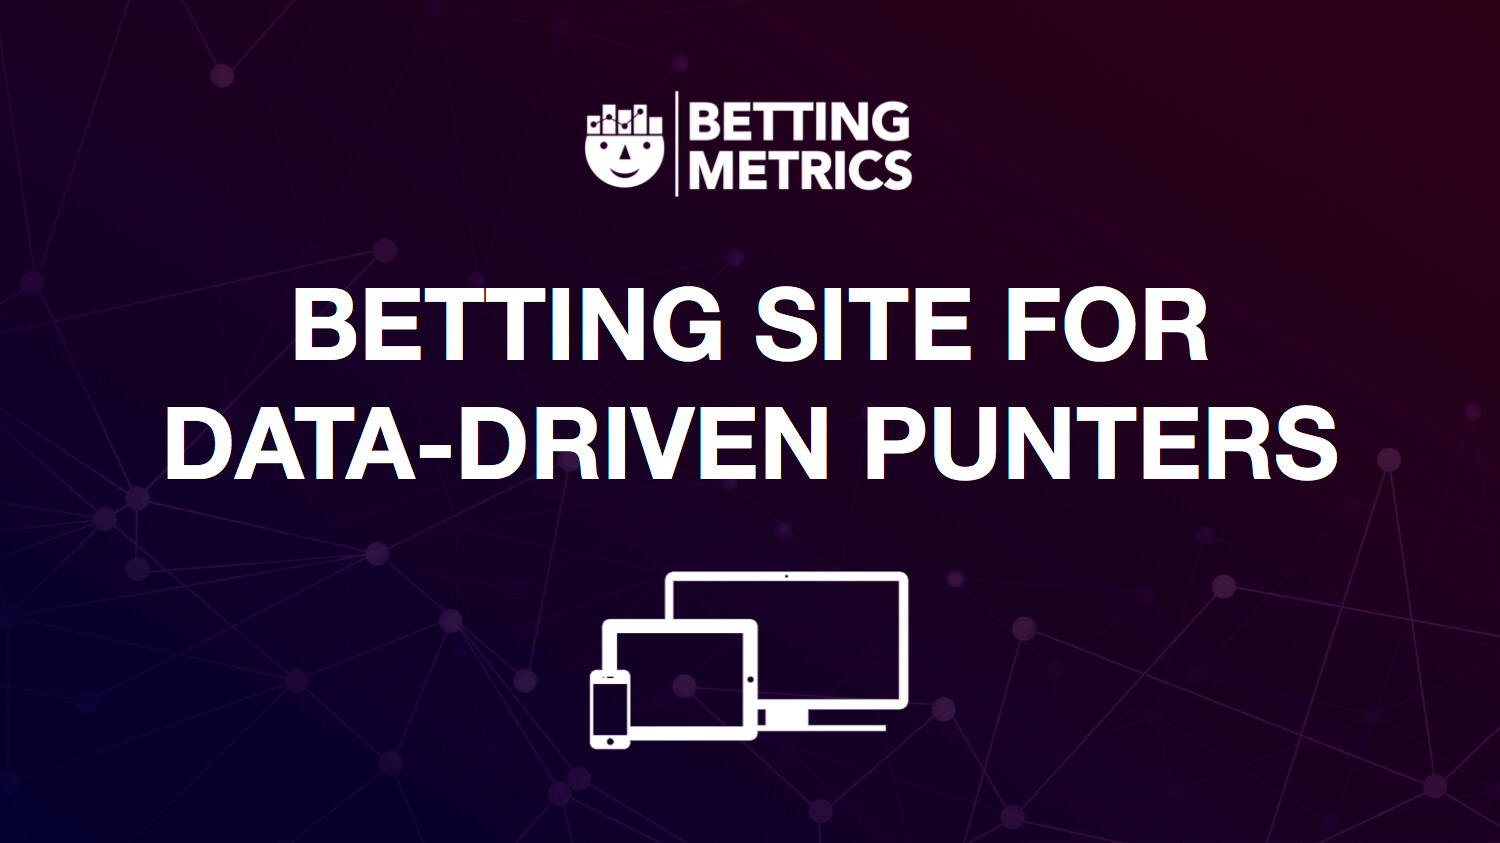 betting site bettingmetrics 3